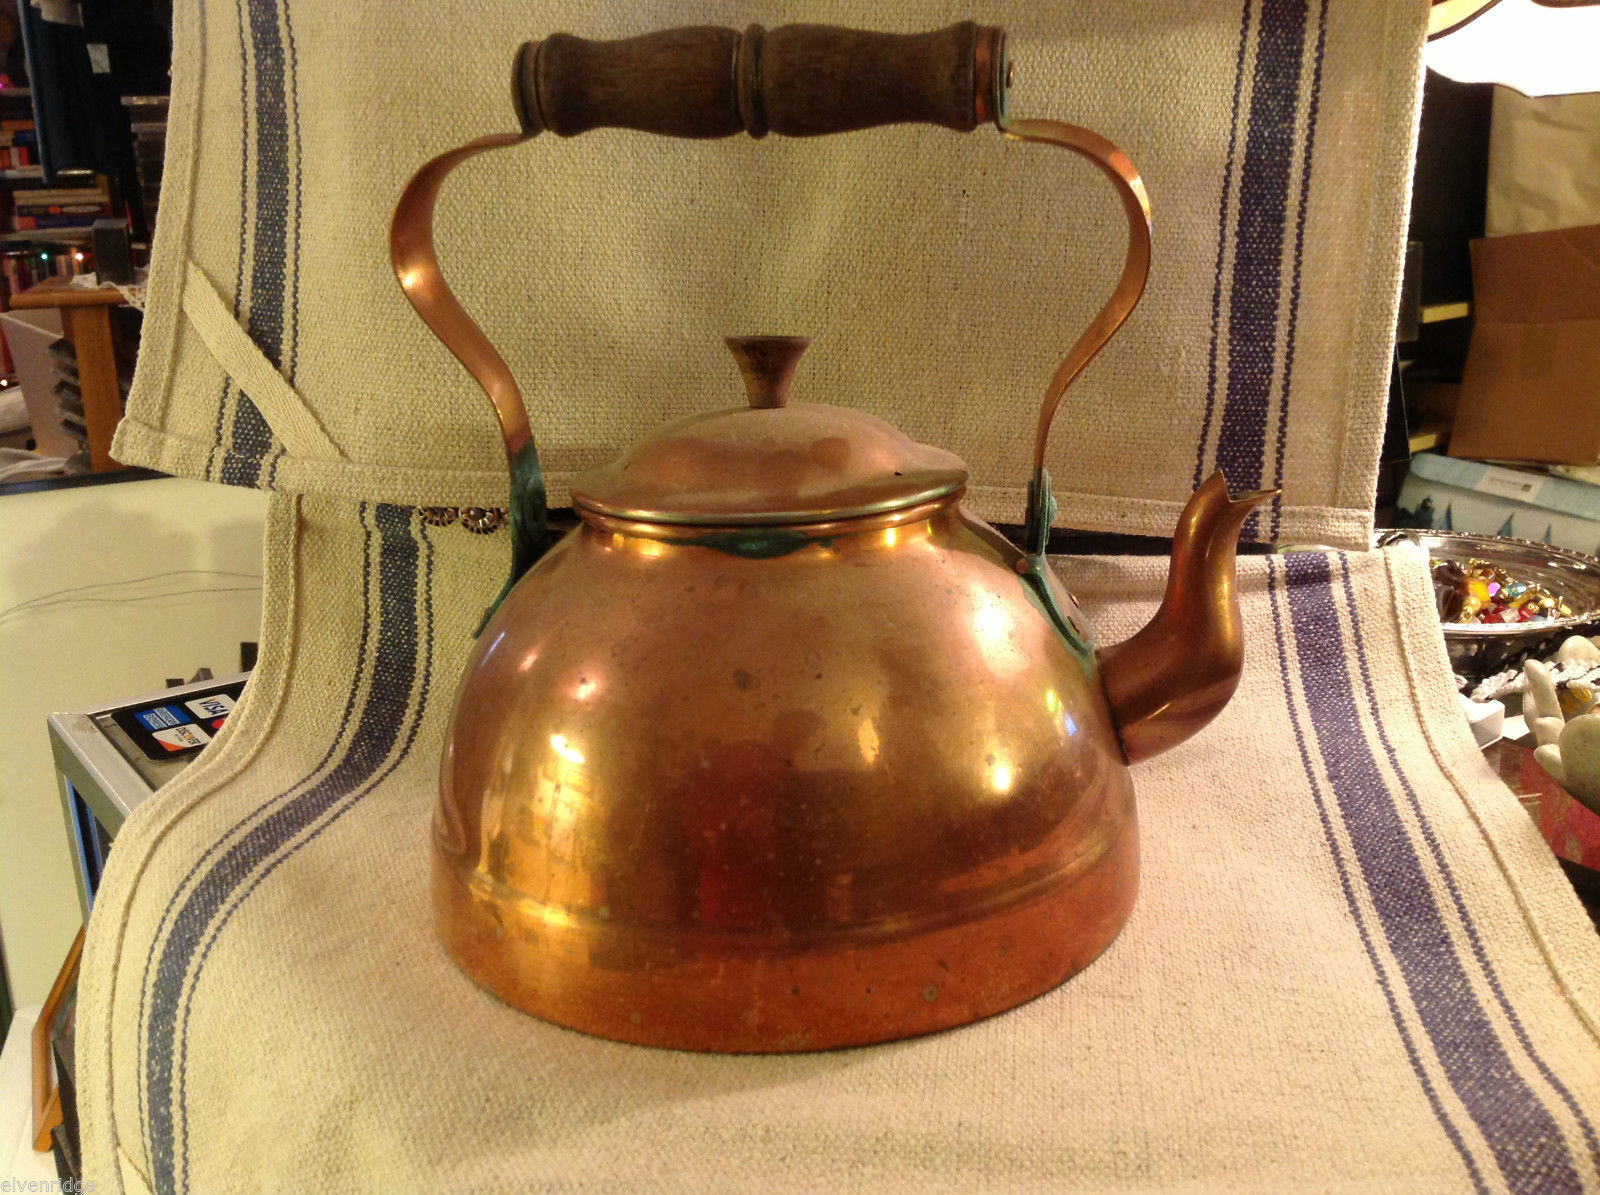 Antique Swedish Copper Tea Kettle or Tea Pot 2 Liter with wooden handle